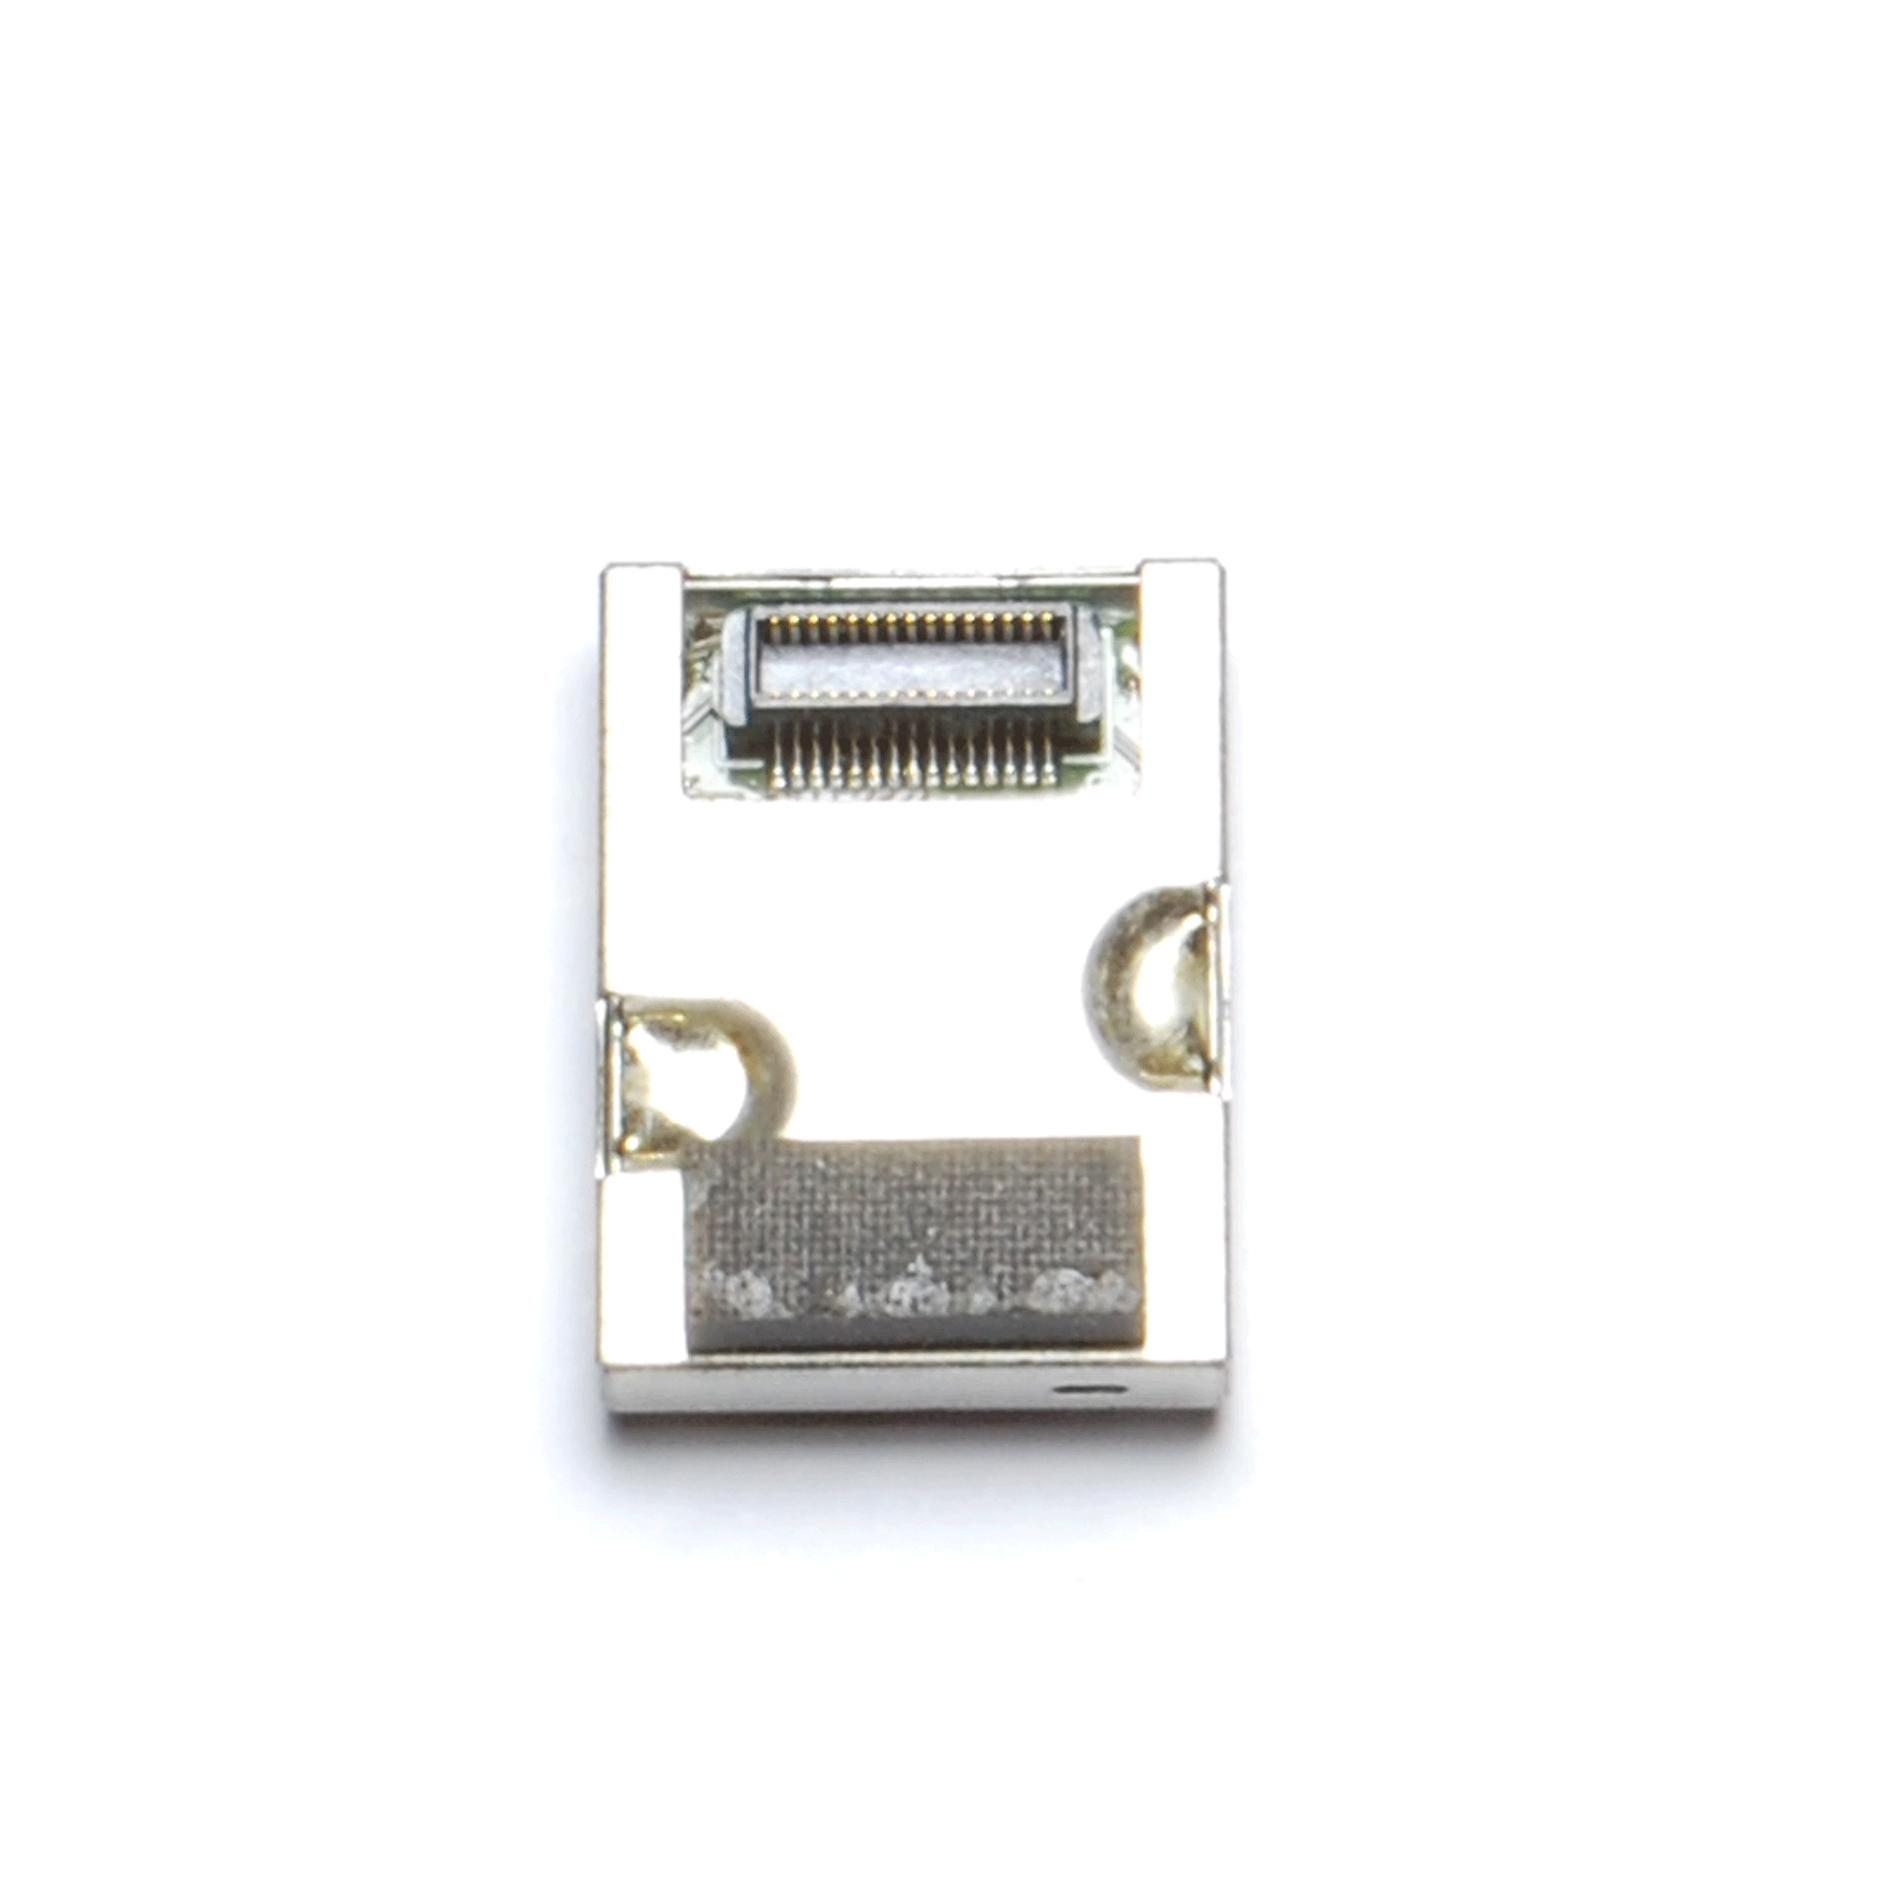 Replacement wifi wireless card module pcb board for nintendo ds lite ndsl dsl